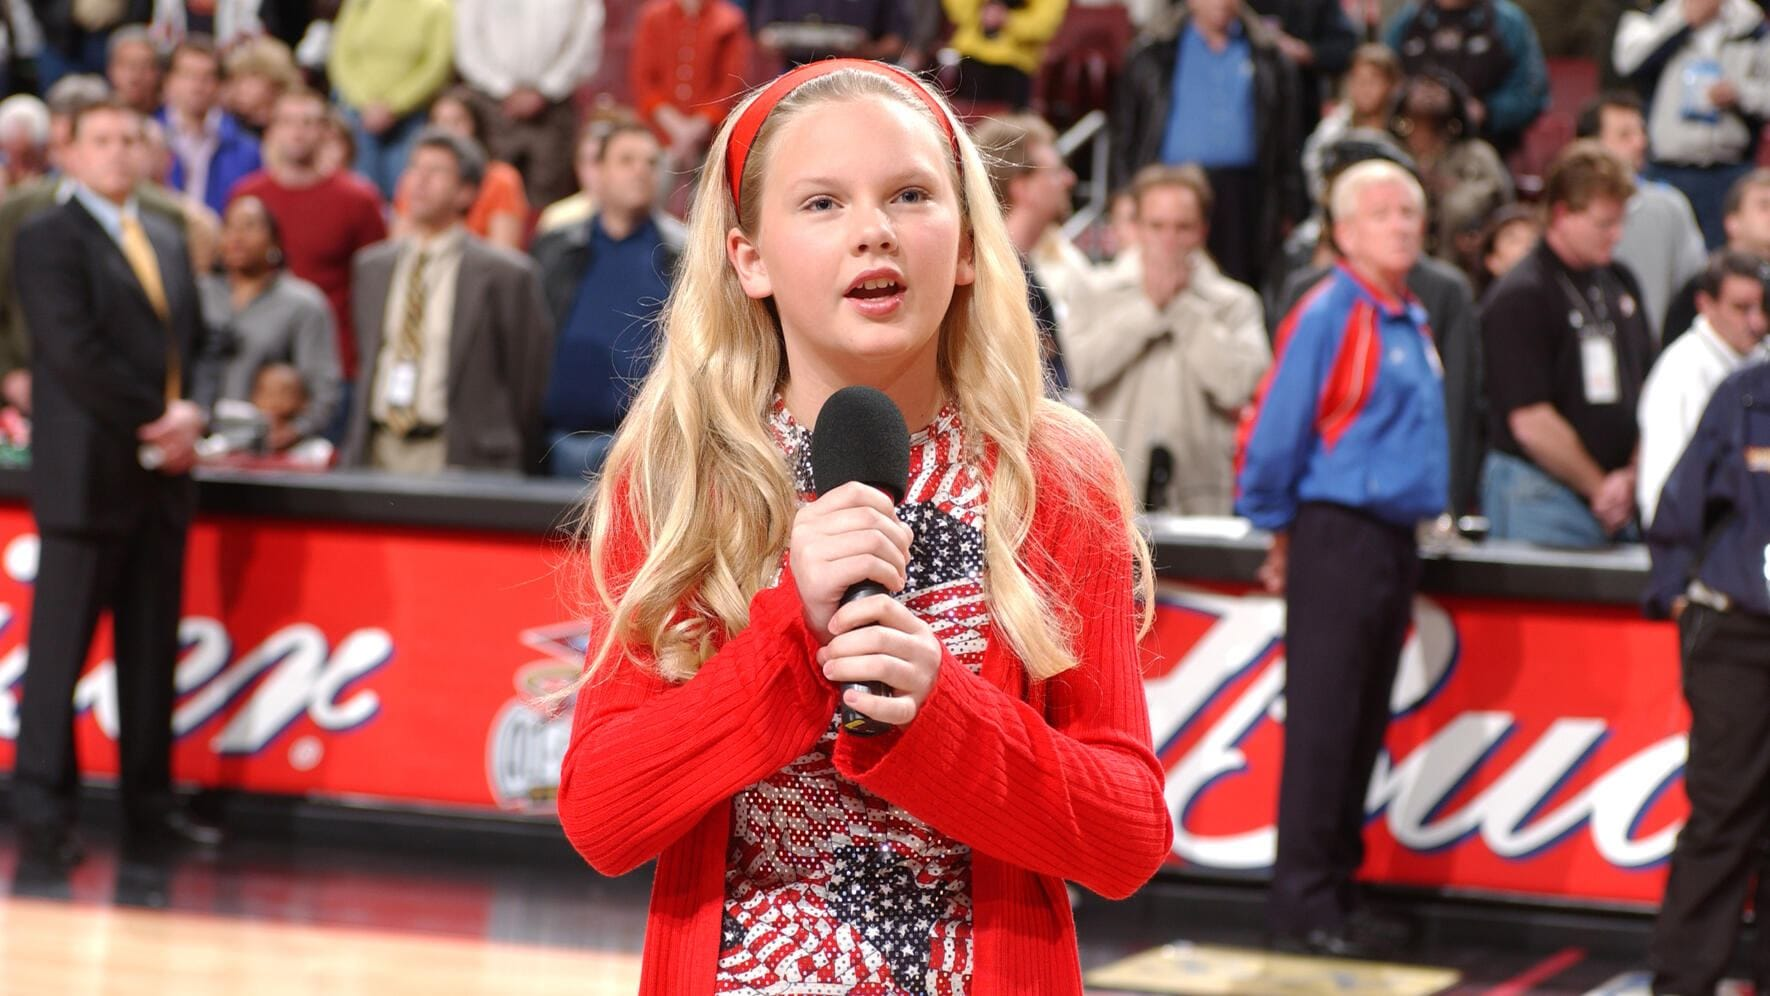 PHILADELPHIA, PA - APRIL 5: Performer Taylor Swift sings the National Anthem prior to the game of the Detroit Pistons against the Philadelphia 76ers on April 5, 2002 at the Comcast Center in Philadelphia, Pennsylvania. NOTE TO USER: User expressly acknowledges and agrees that, by downloading and/or using this Photograph, user is consenting to the terms and conditions of the Getty Images License Agreement. Mandatory Copyright Notice: Copyright 2014 NBAE (Photo by Jesse D. Garrabrant/NBAE via Getty Images)